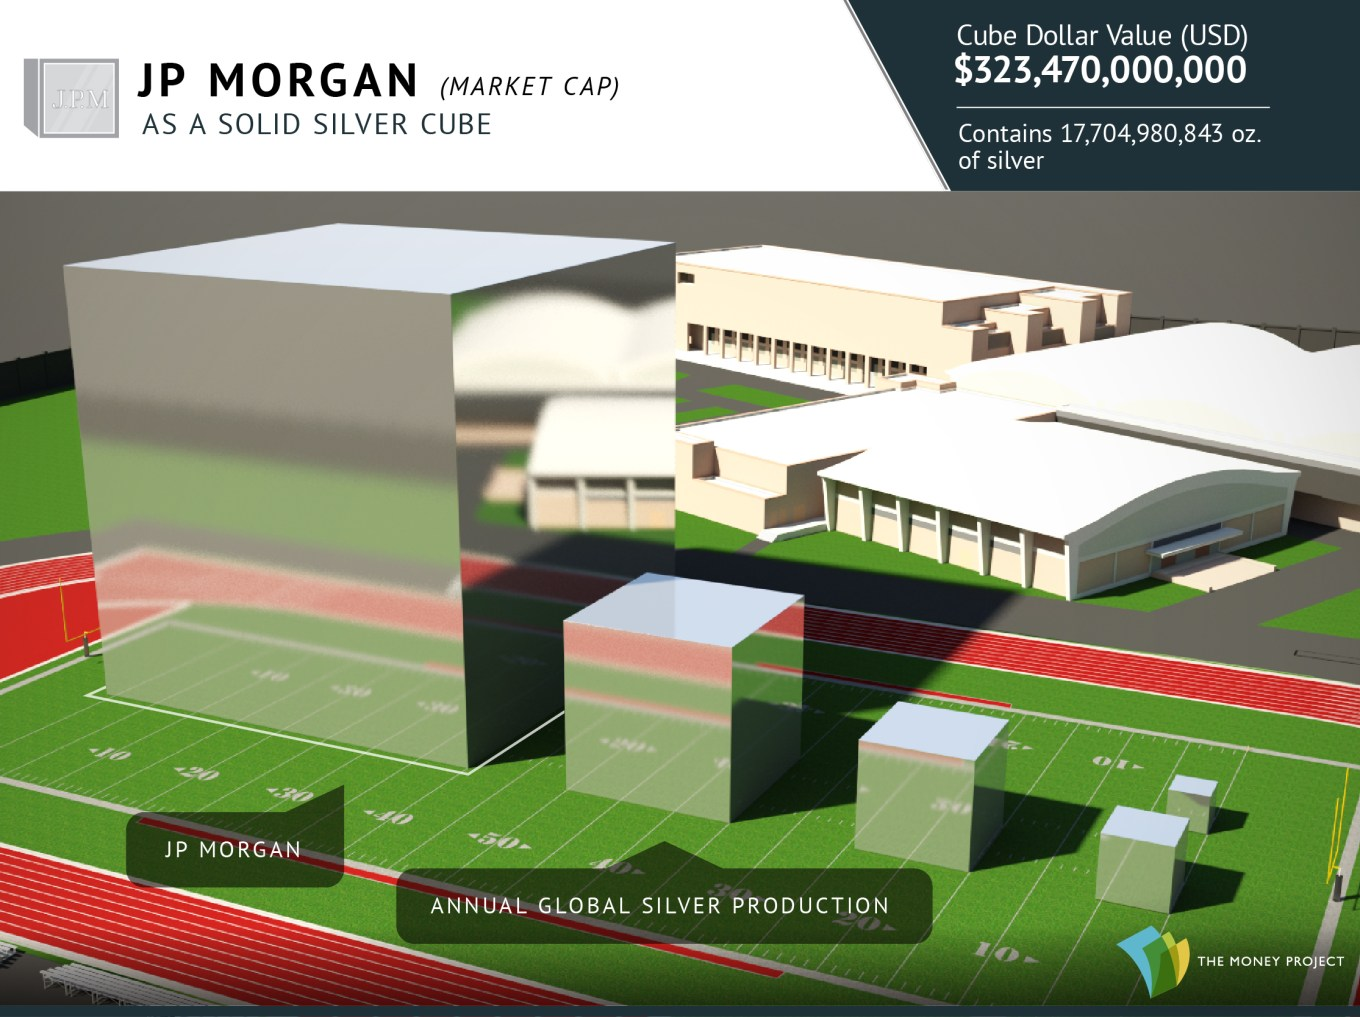 JPMorgan's market capitalization as a silver cube